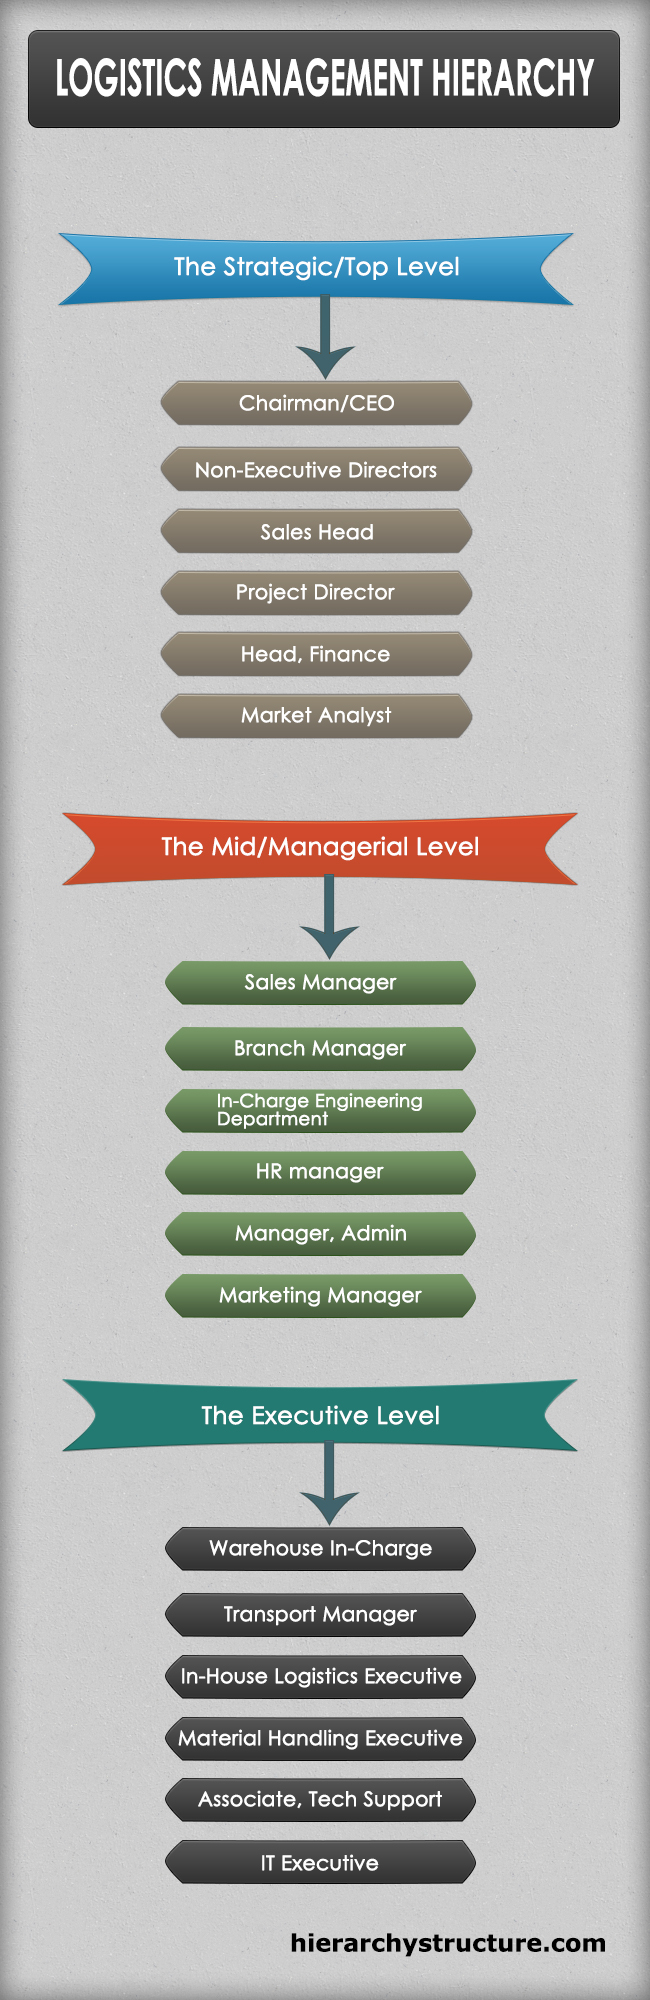 Logistics Management Hierarchy